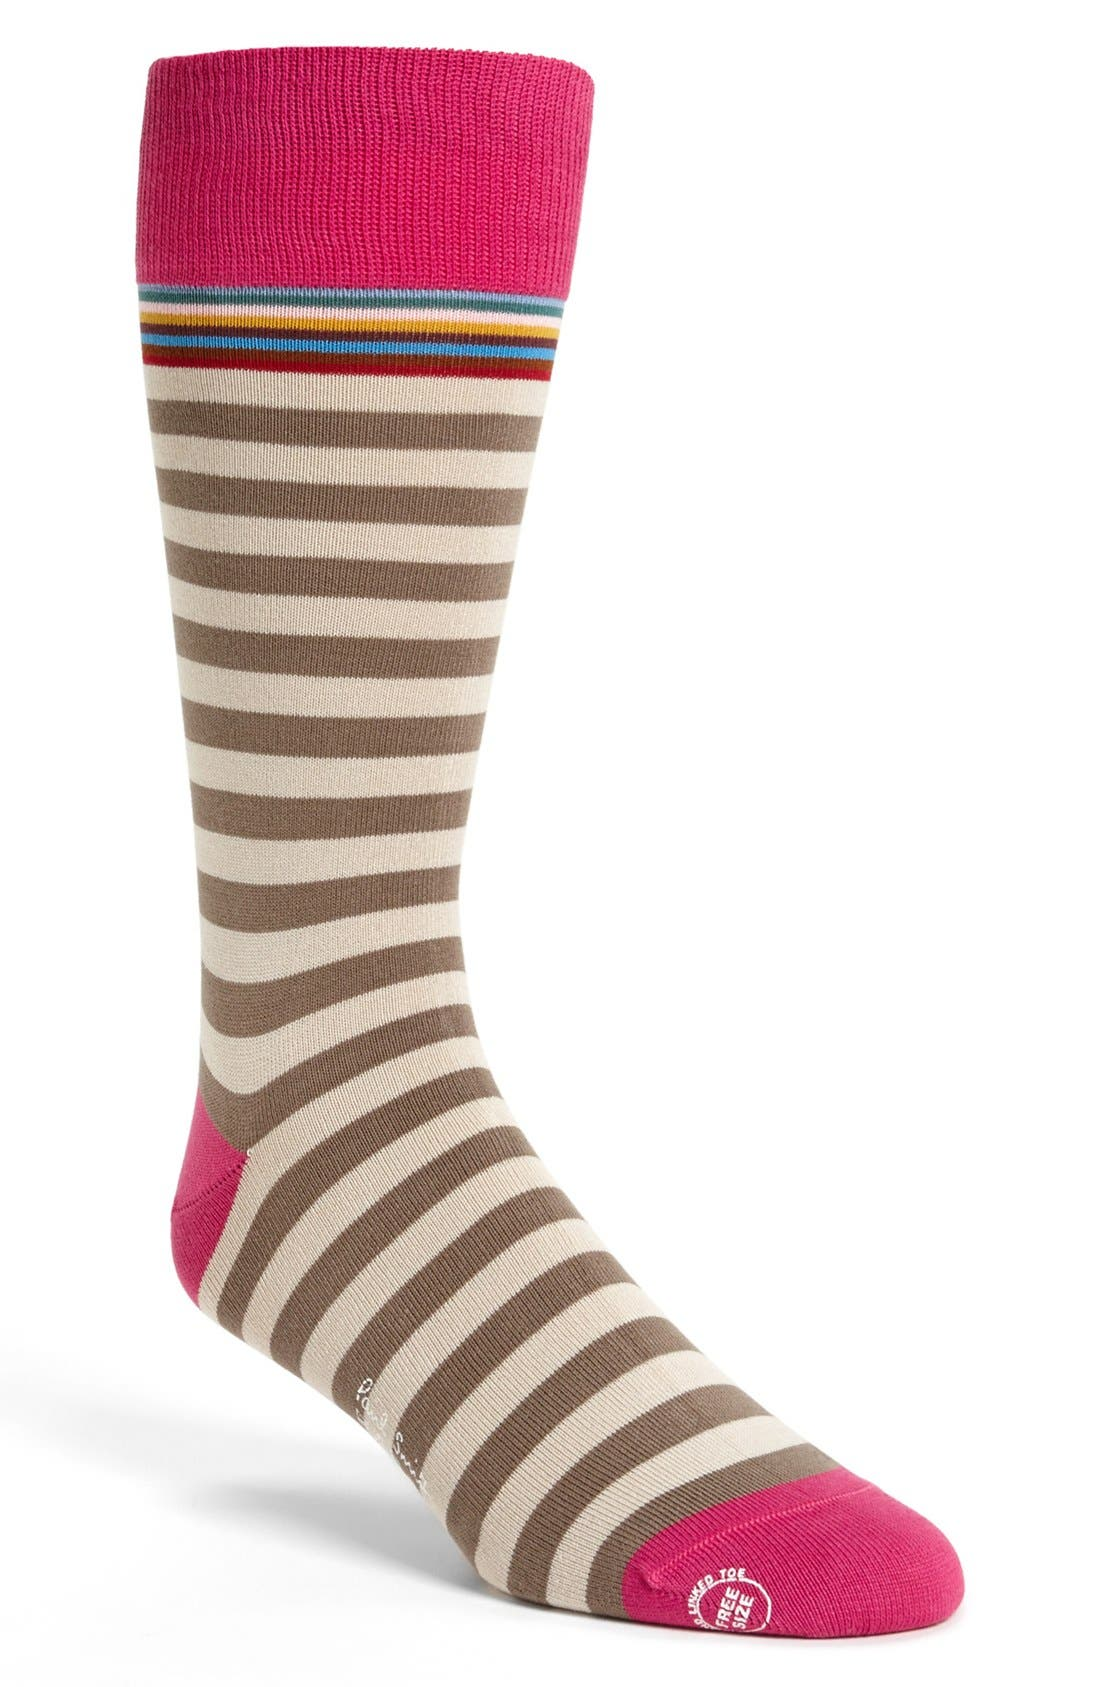 Alternate Image 1 Selected - Paul Smith Accessories Multi Stripe Socks